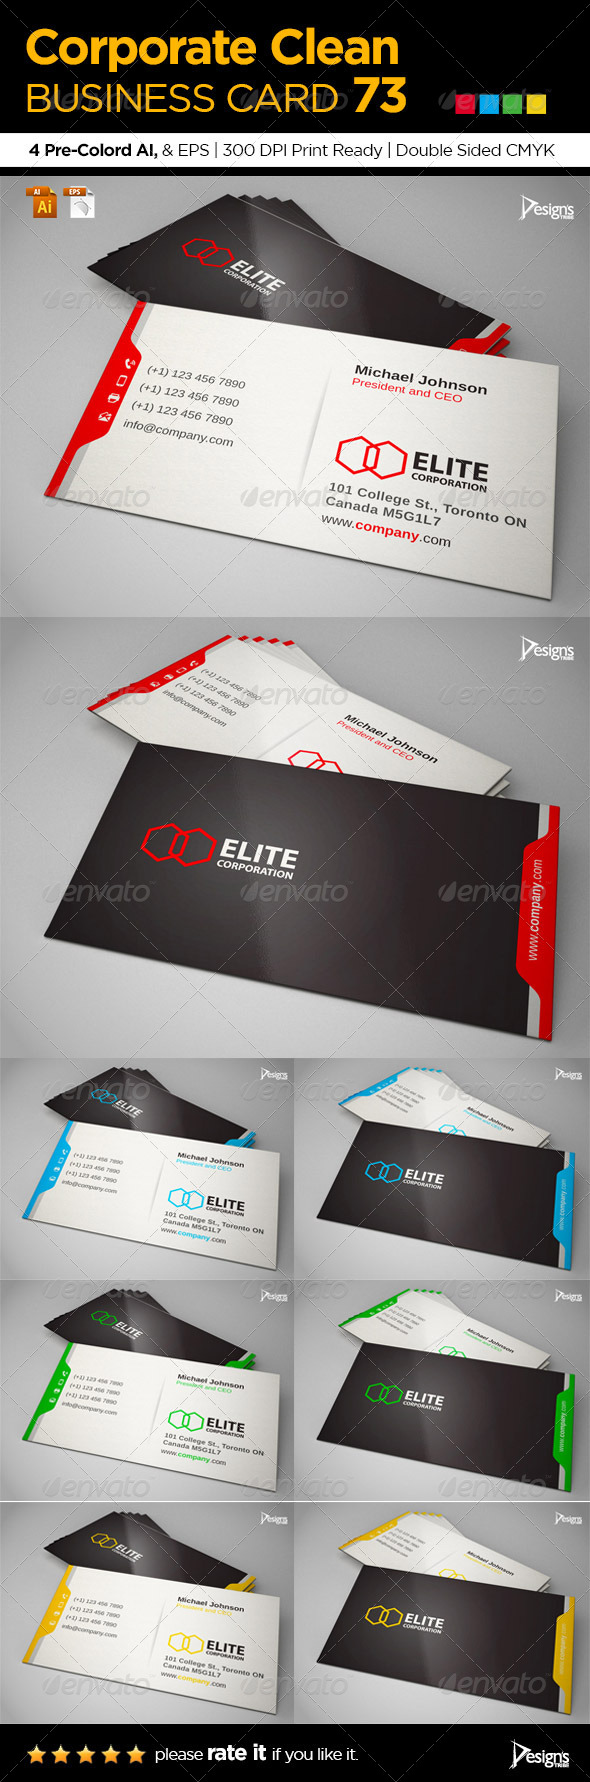 Corporate Clean Business Card 73 - Corporate Business Cards